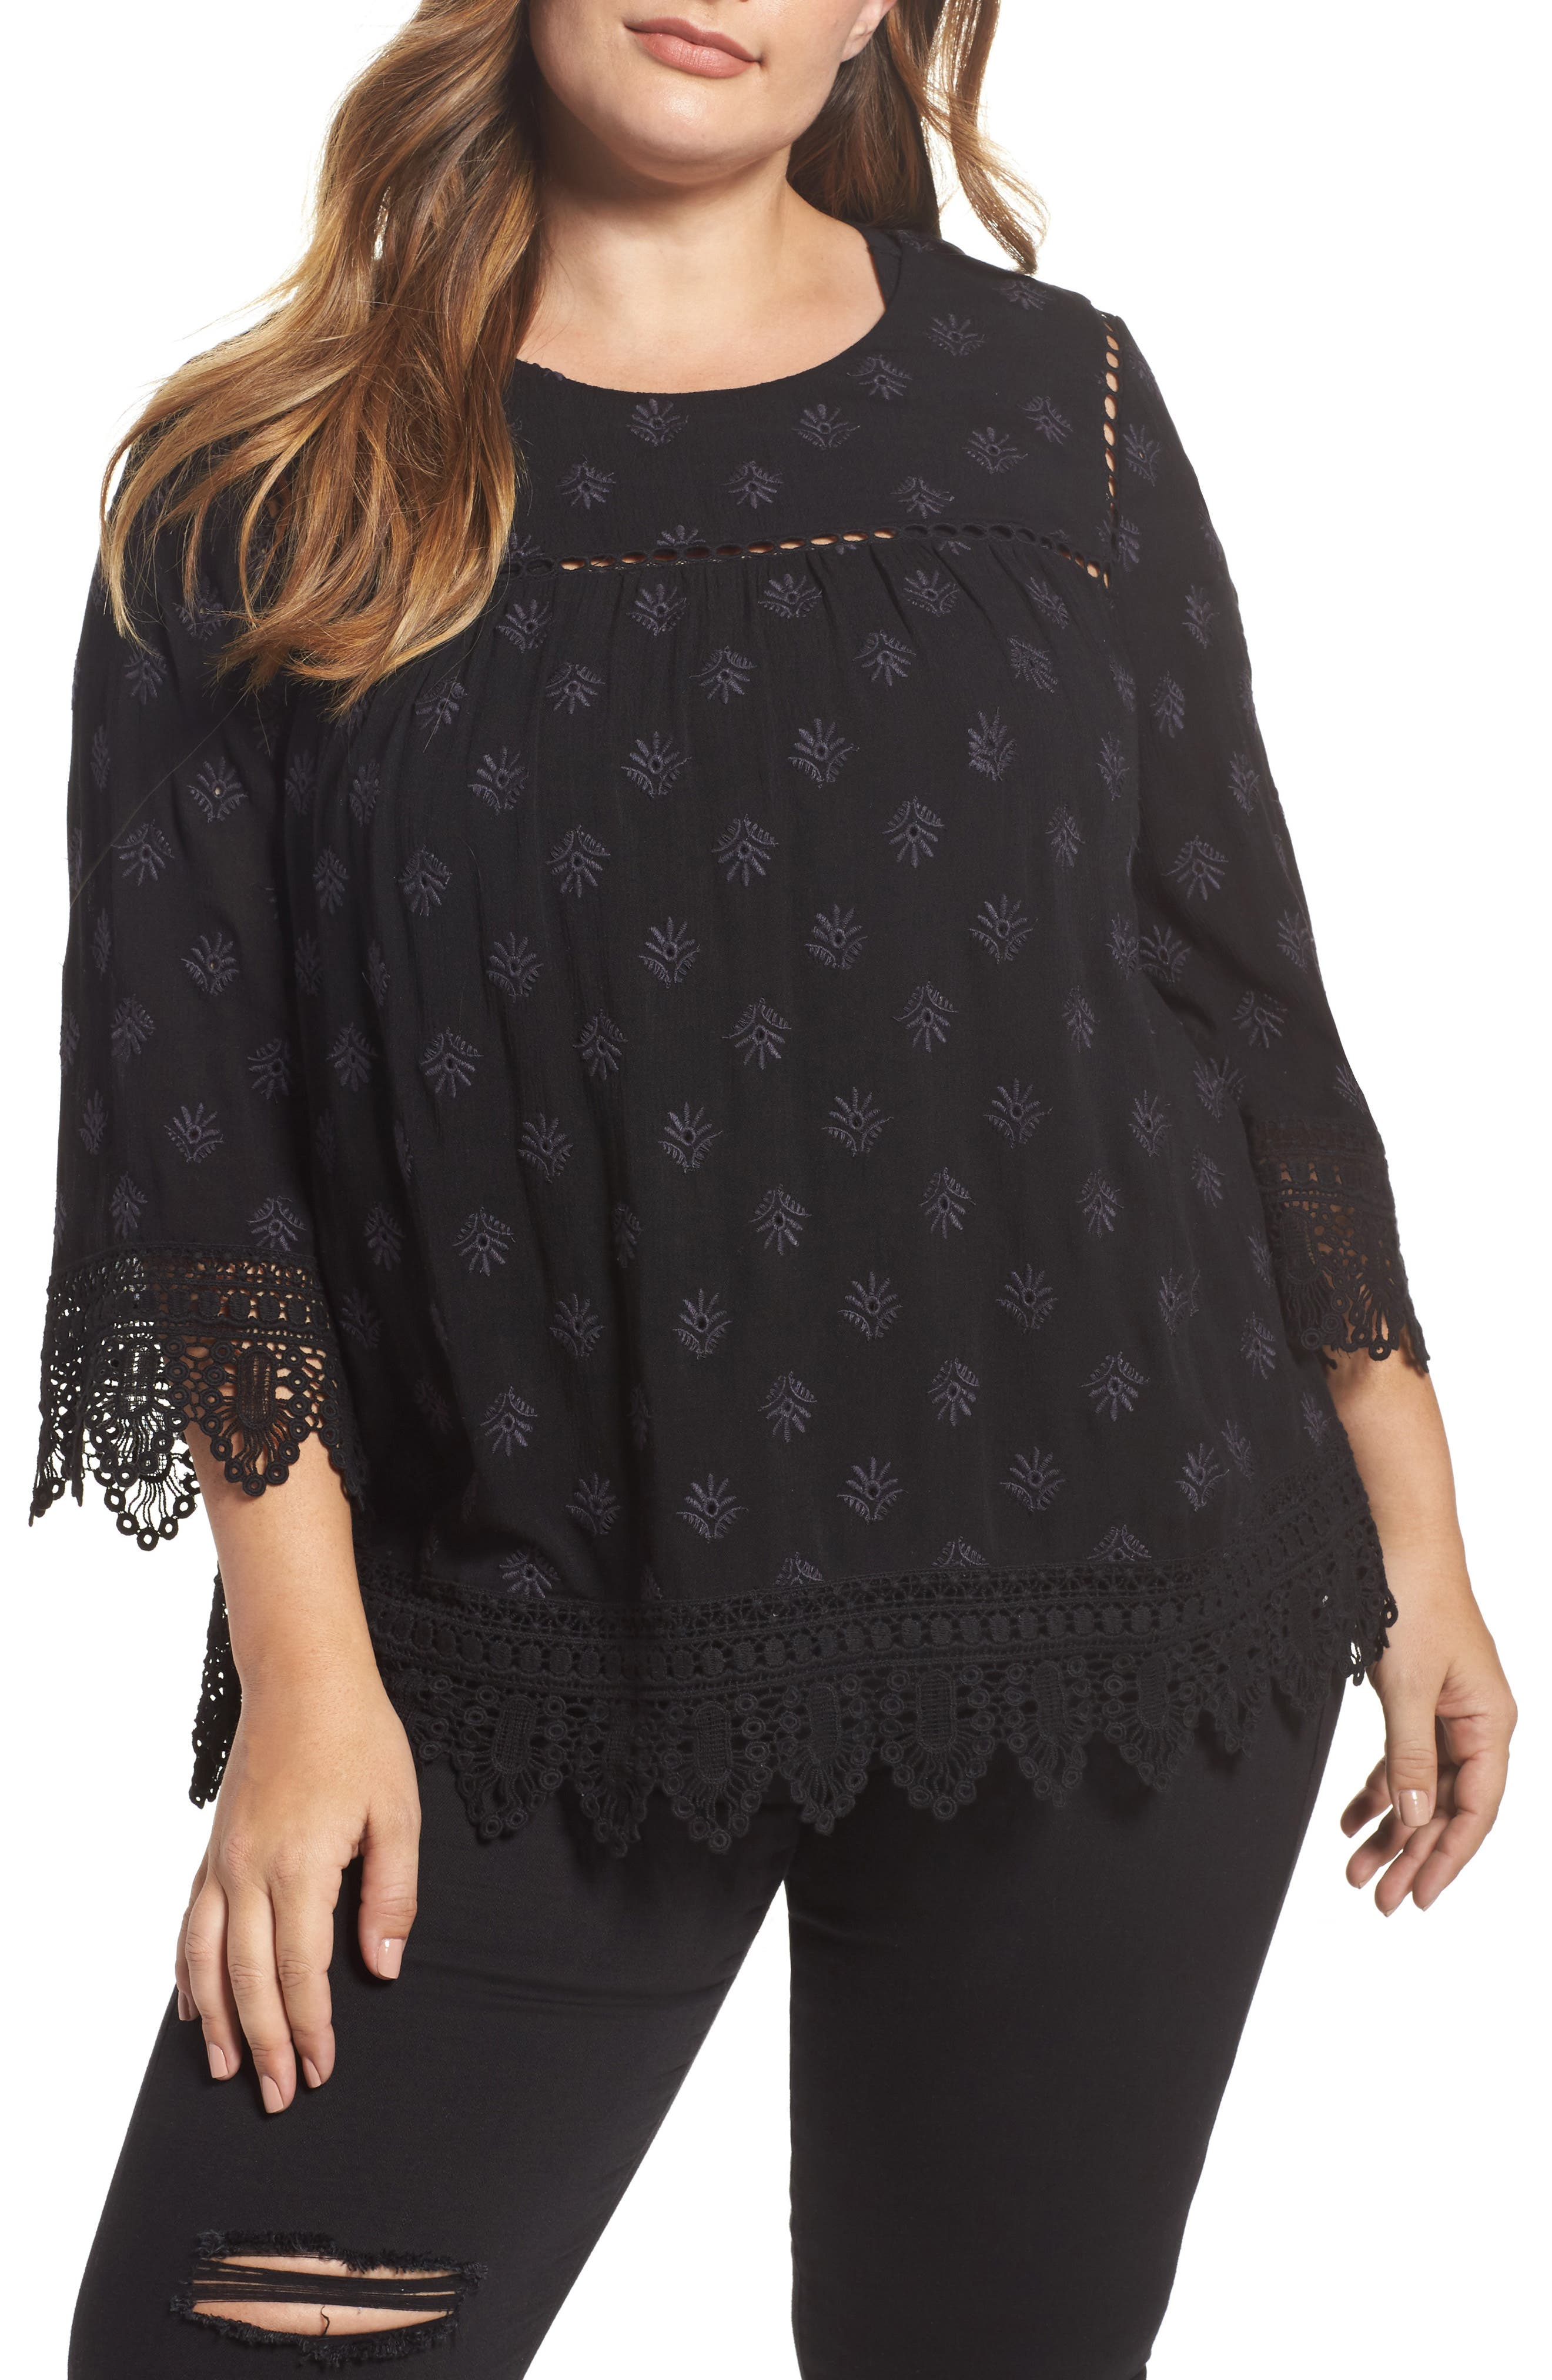 Alternate Image 1 Selected - Daniel Rainn Eyelet Embroidered Gauze Blouse (Plus Size)